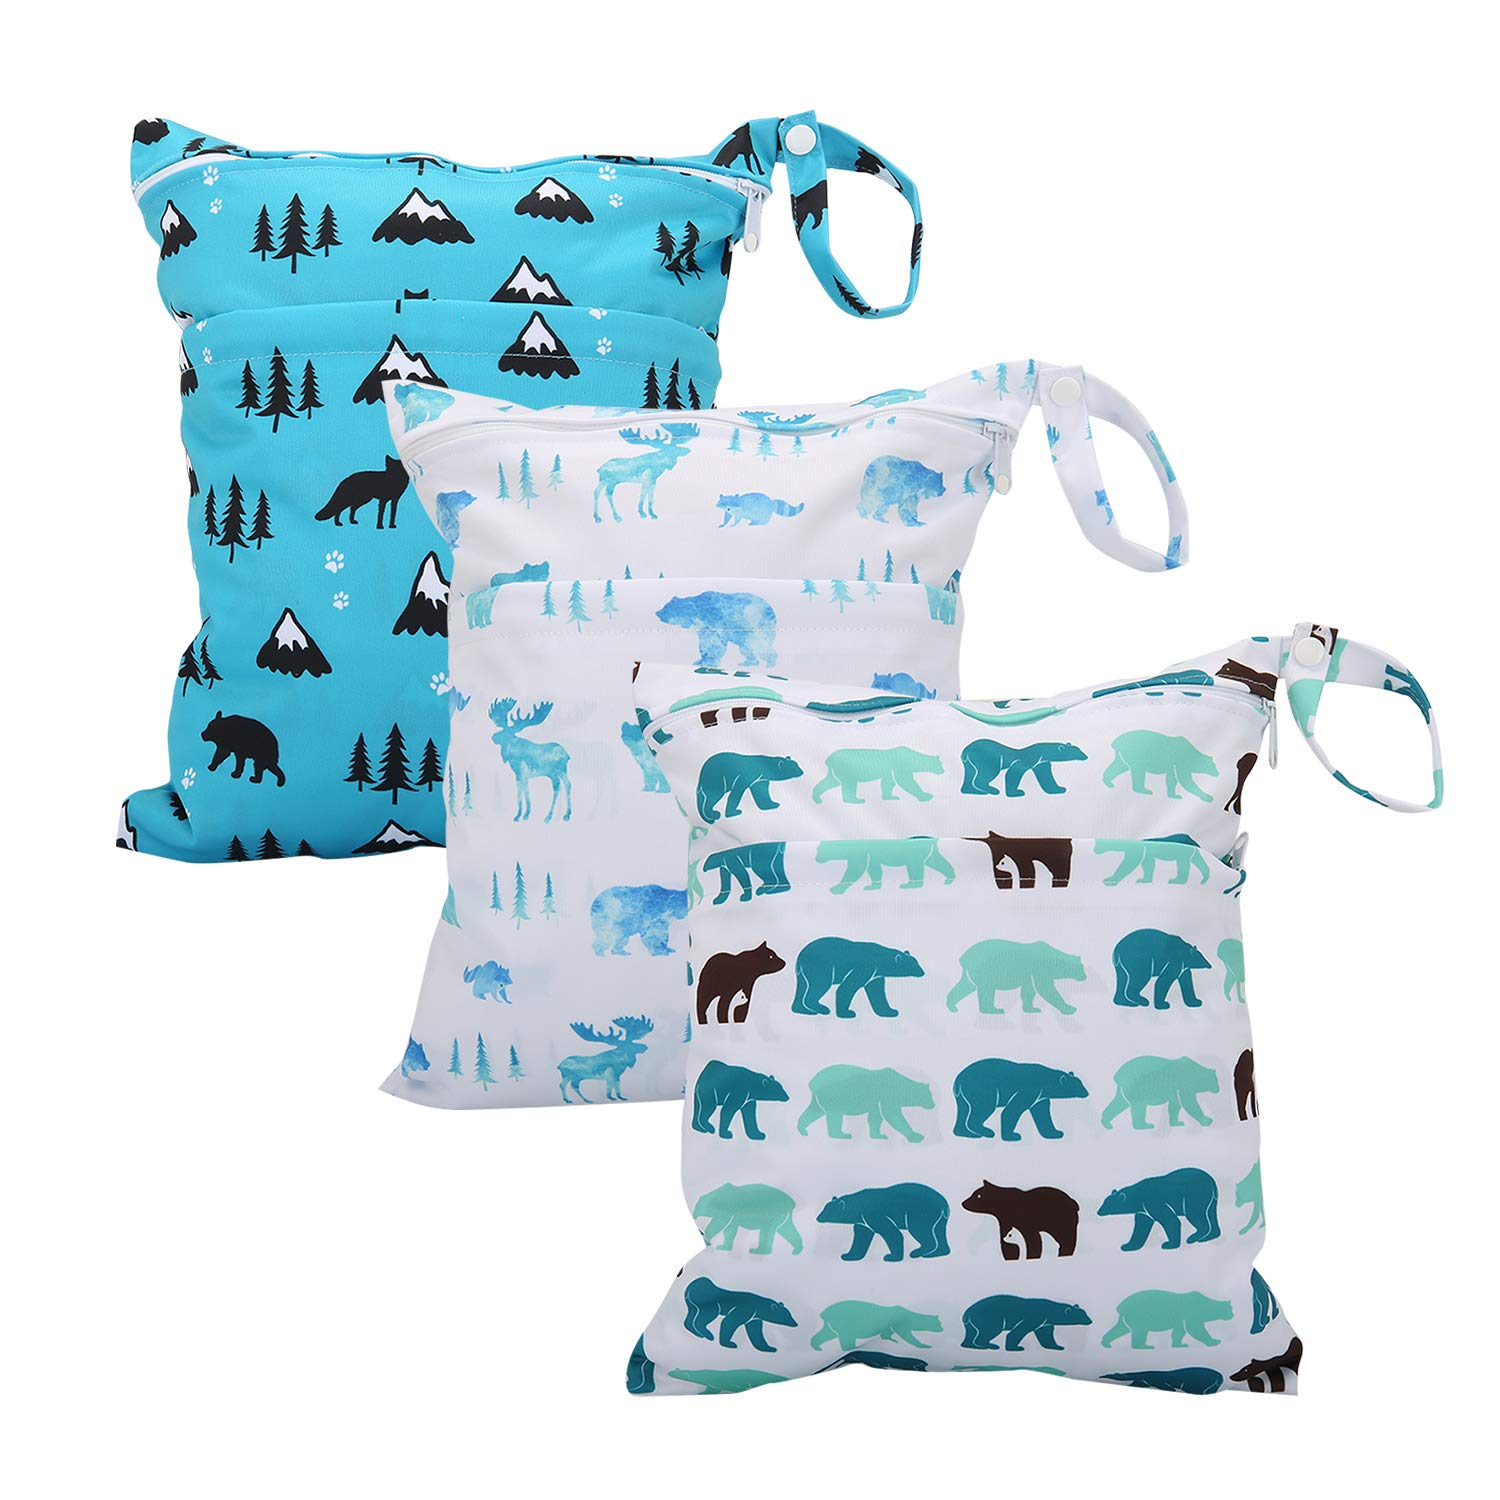 Wet Bag for Cloth Diapers Waterproof Reusable Bags with Two Zippered Pockets Polarbear Wet Dry Bag Travel Beach Pool Yoga Gym Bag for Pump Swimsuits Wet Clothes 3pcs